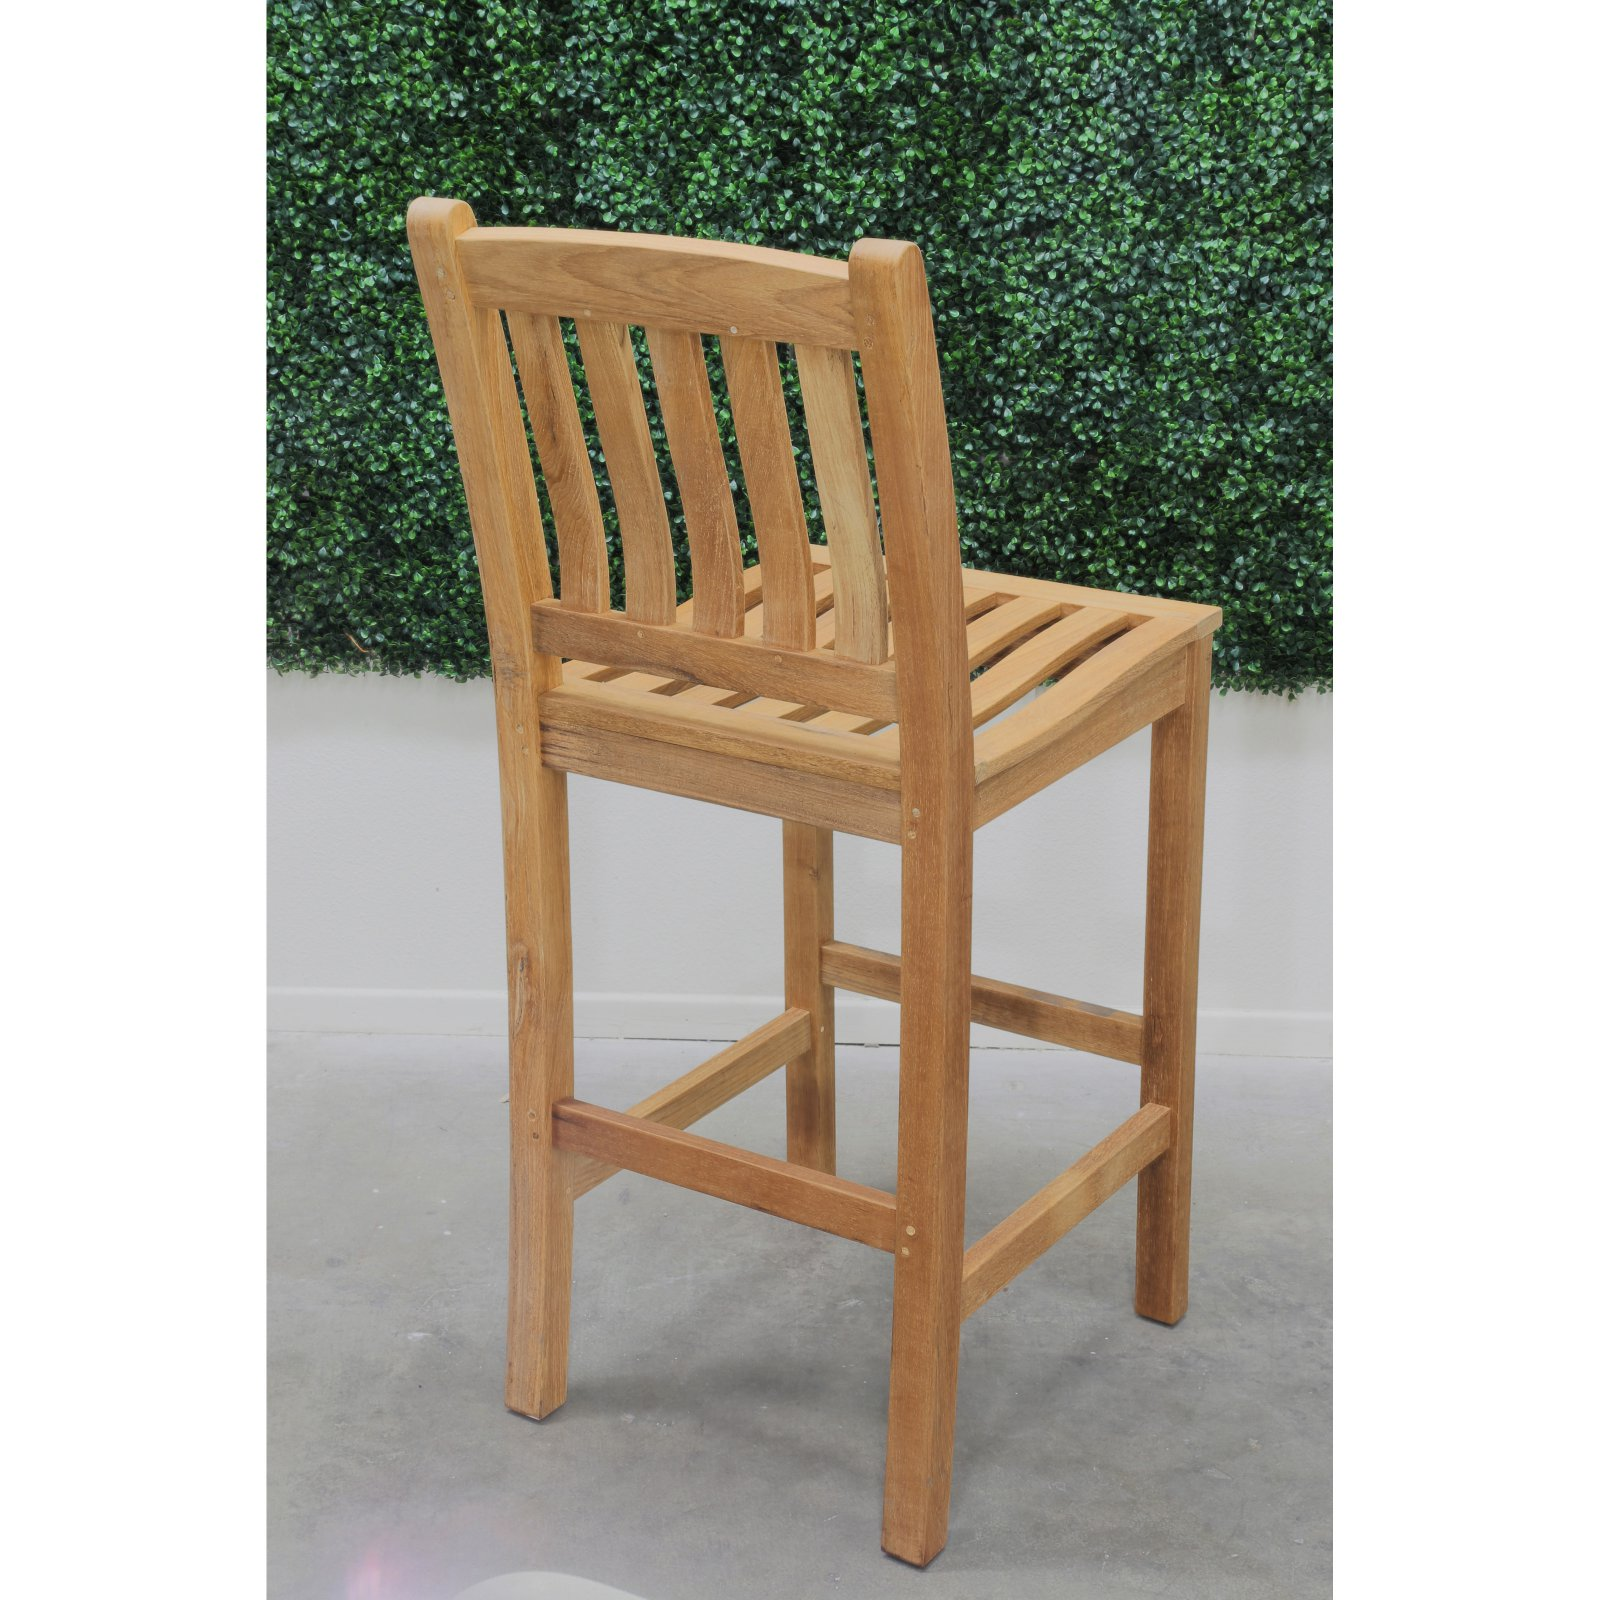 HiTeak Furniture Oasis Patio Bar Height Chair